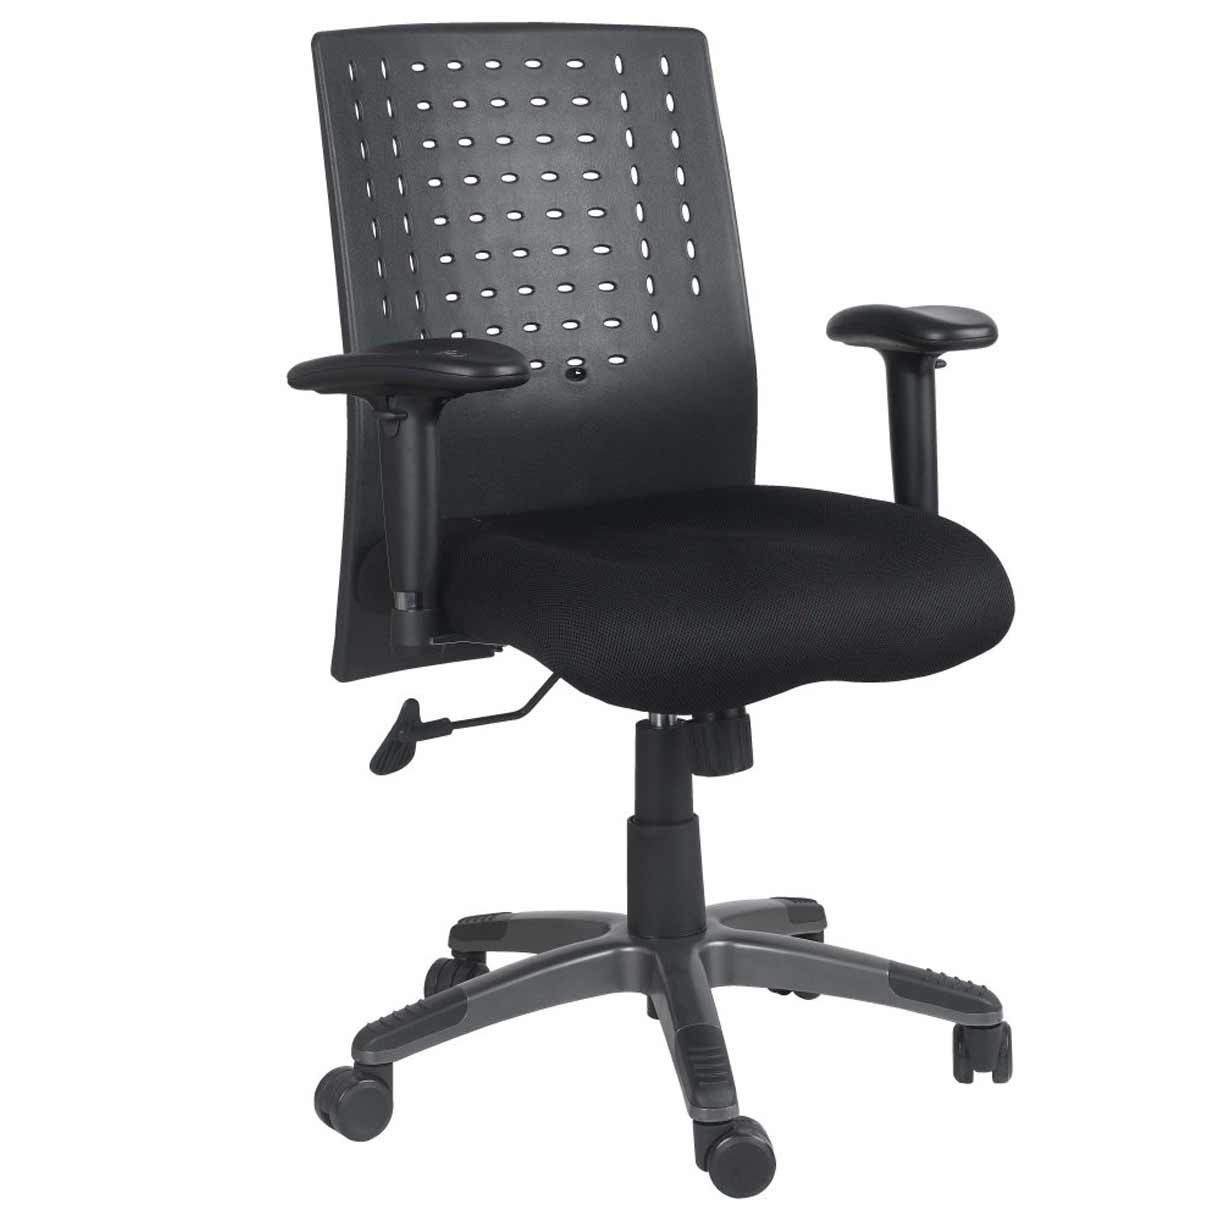 Adjustable Height Armrest Office Chair with Ergonomic Back